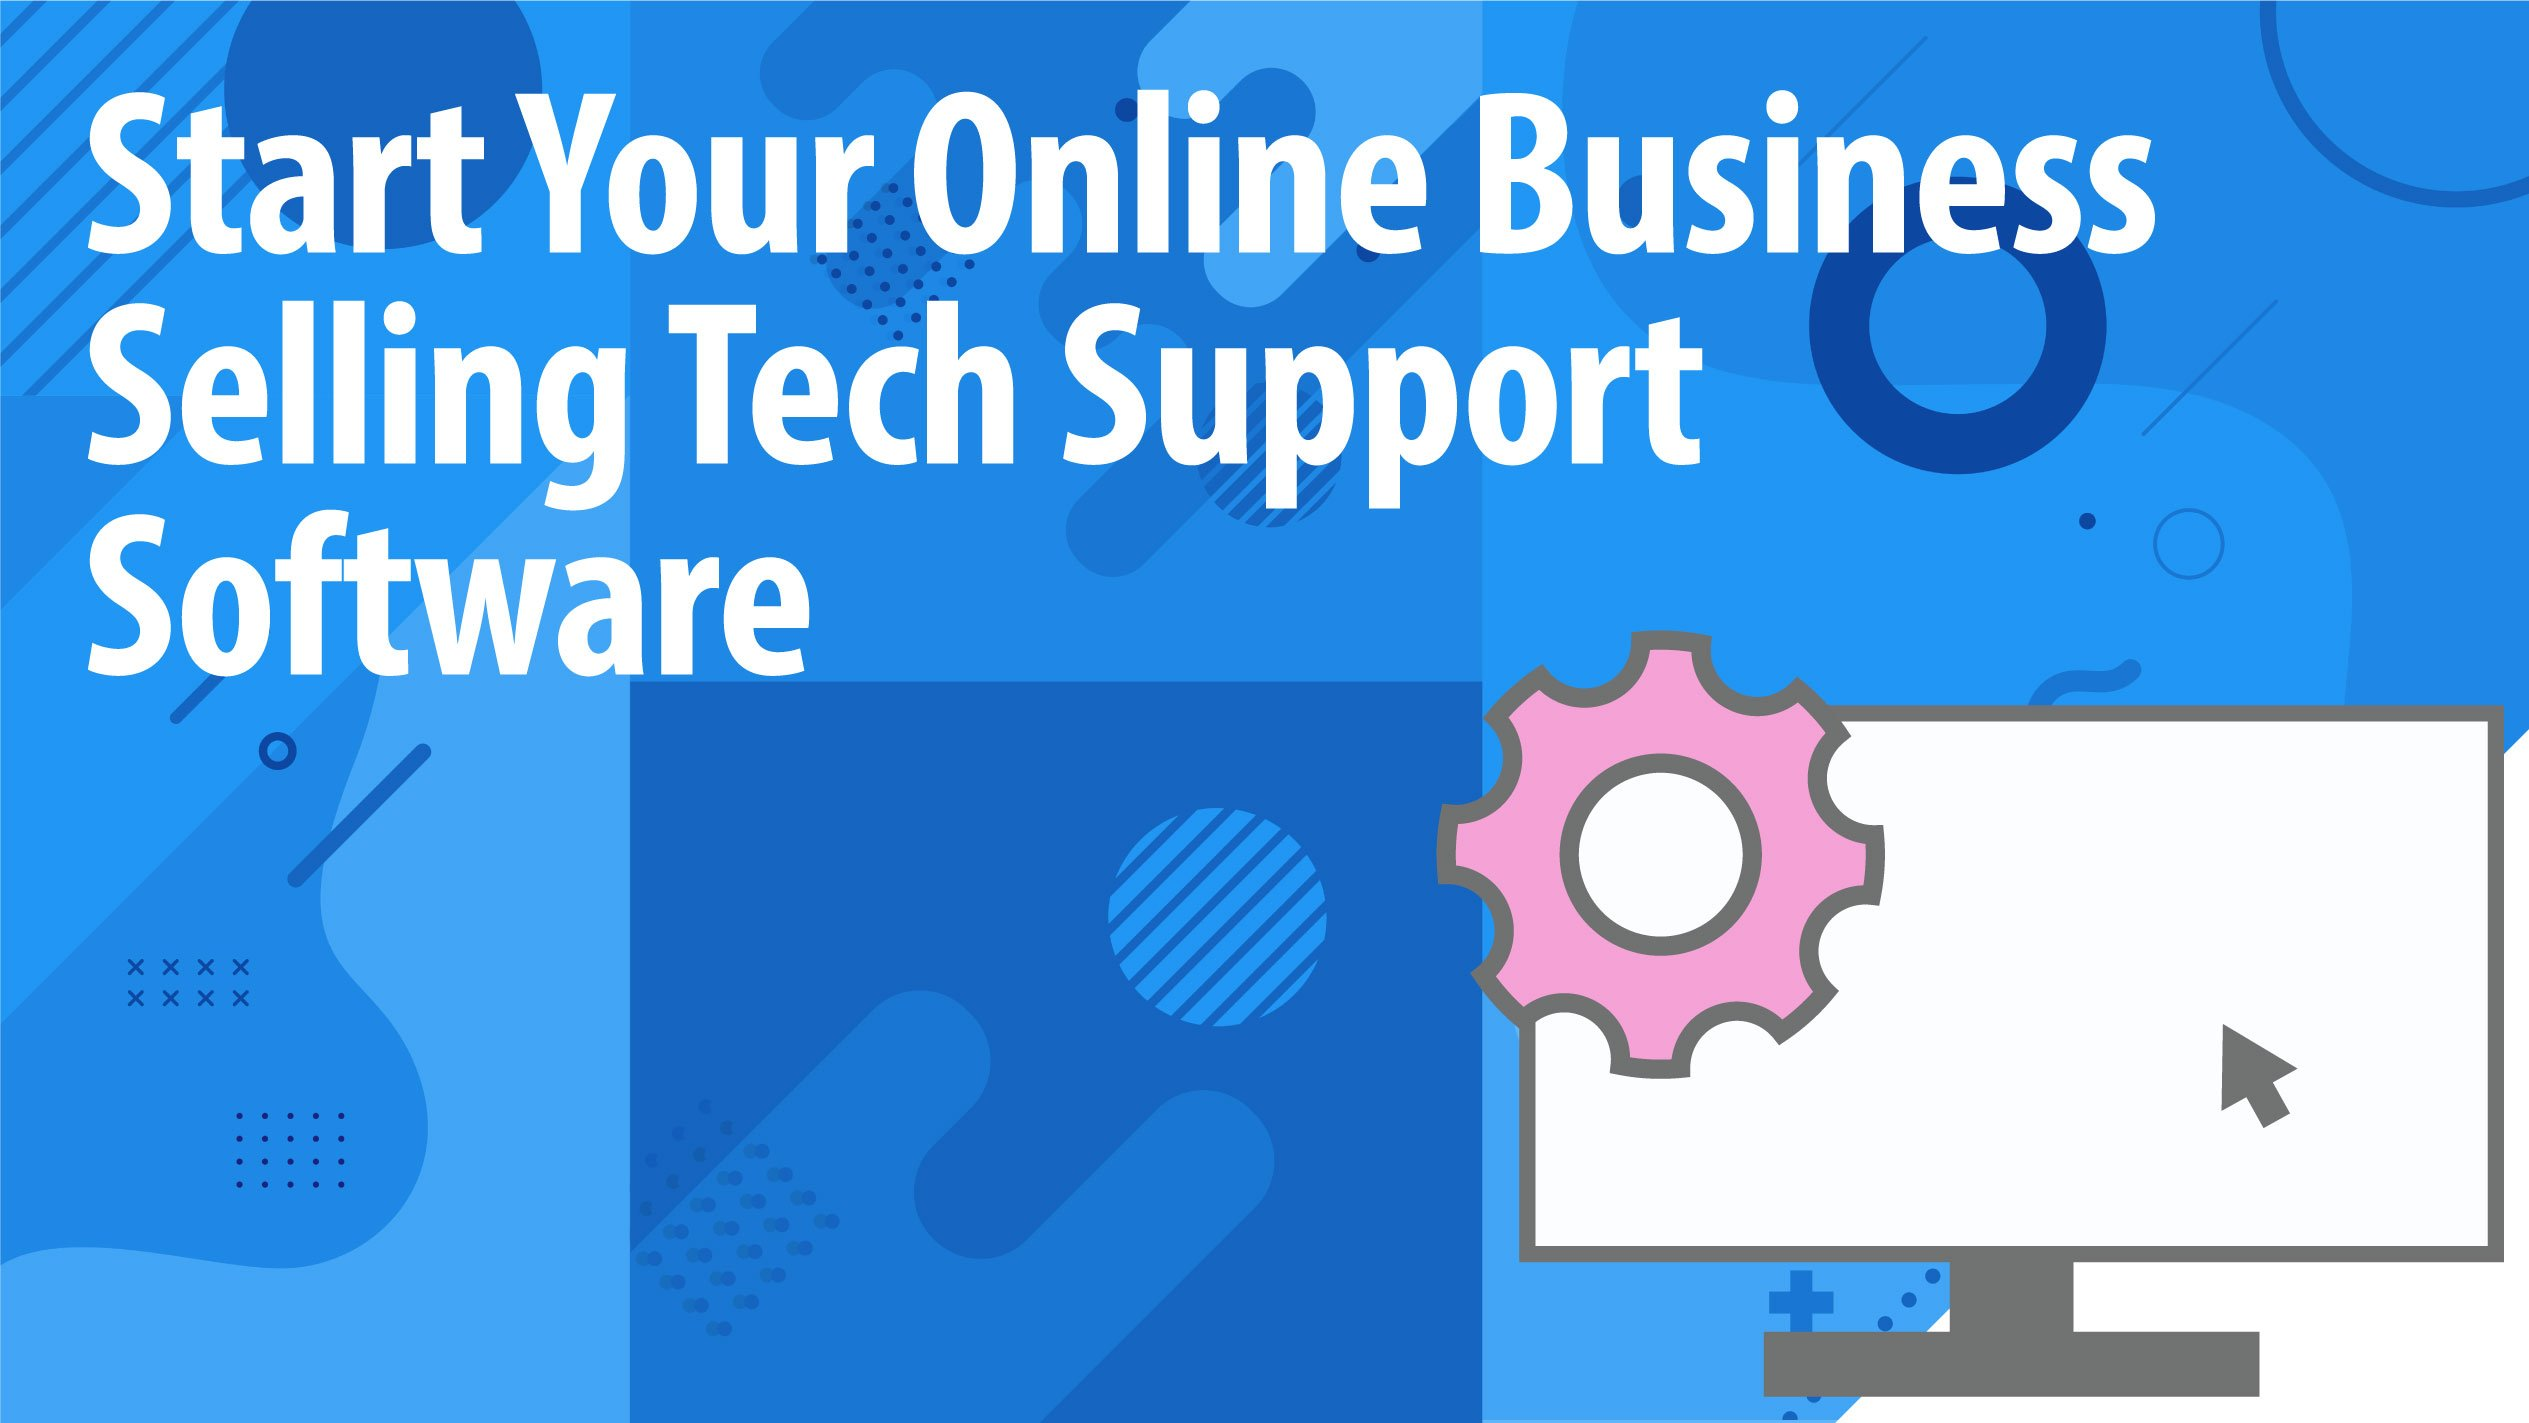 Start Your Online Business Selling Tech Support Software